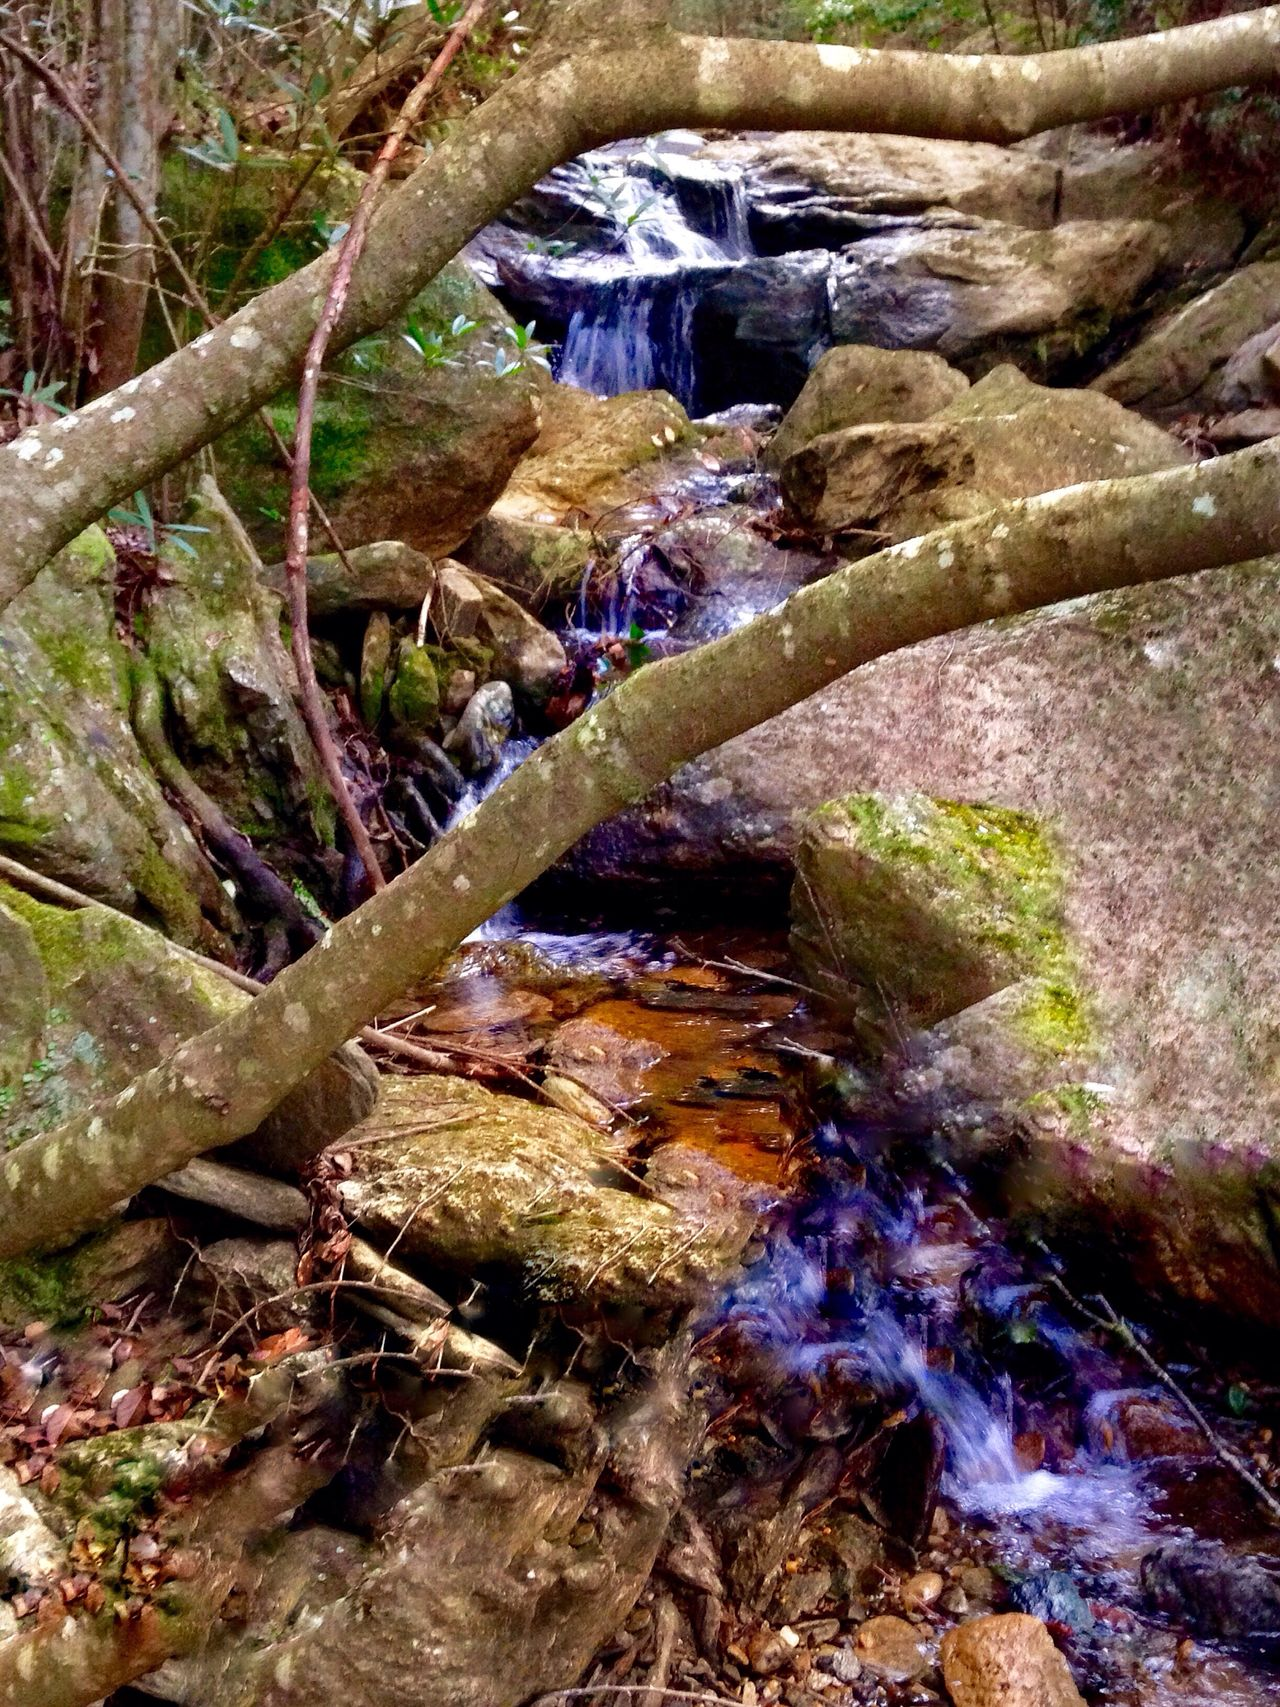 Creekside Trail Mother Nature Nature High Angle View Saikai City Japan No People Tree Water Outdoors Day Beauty In Nature